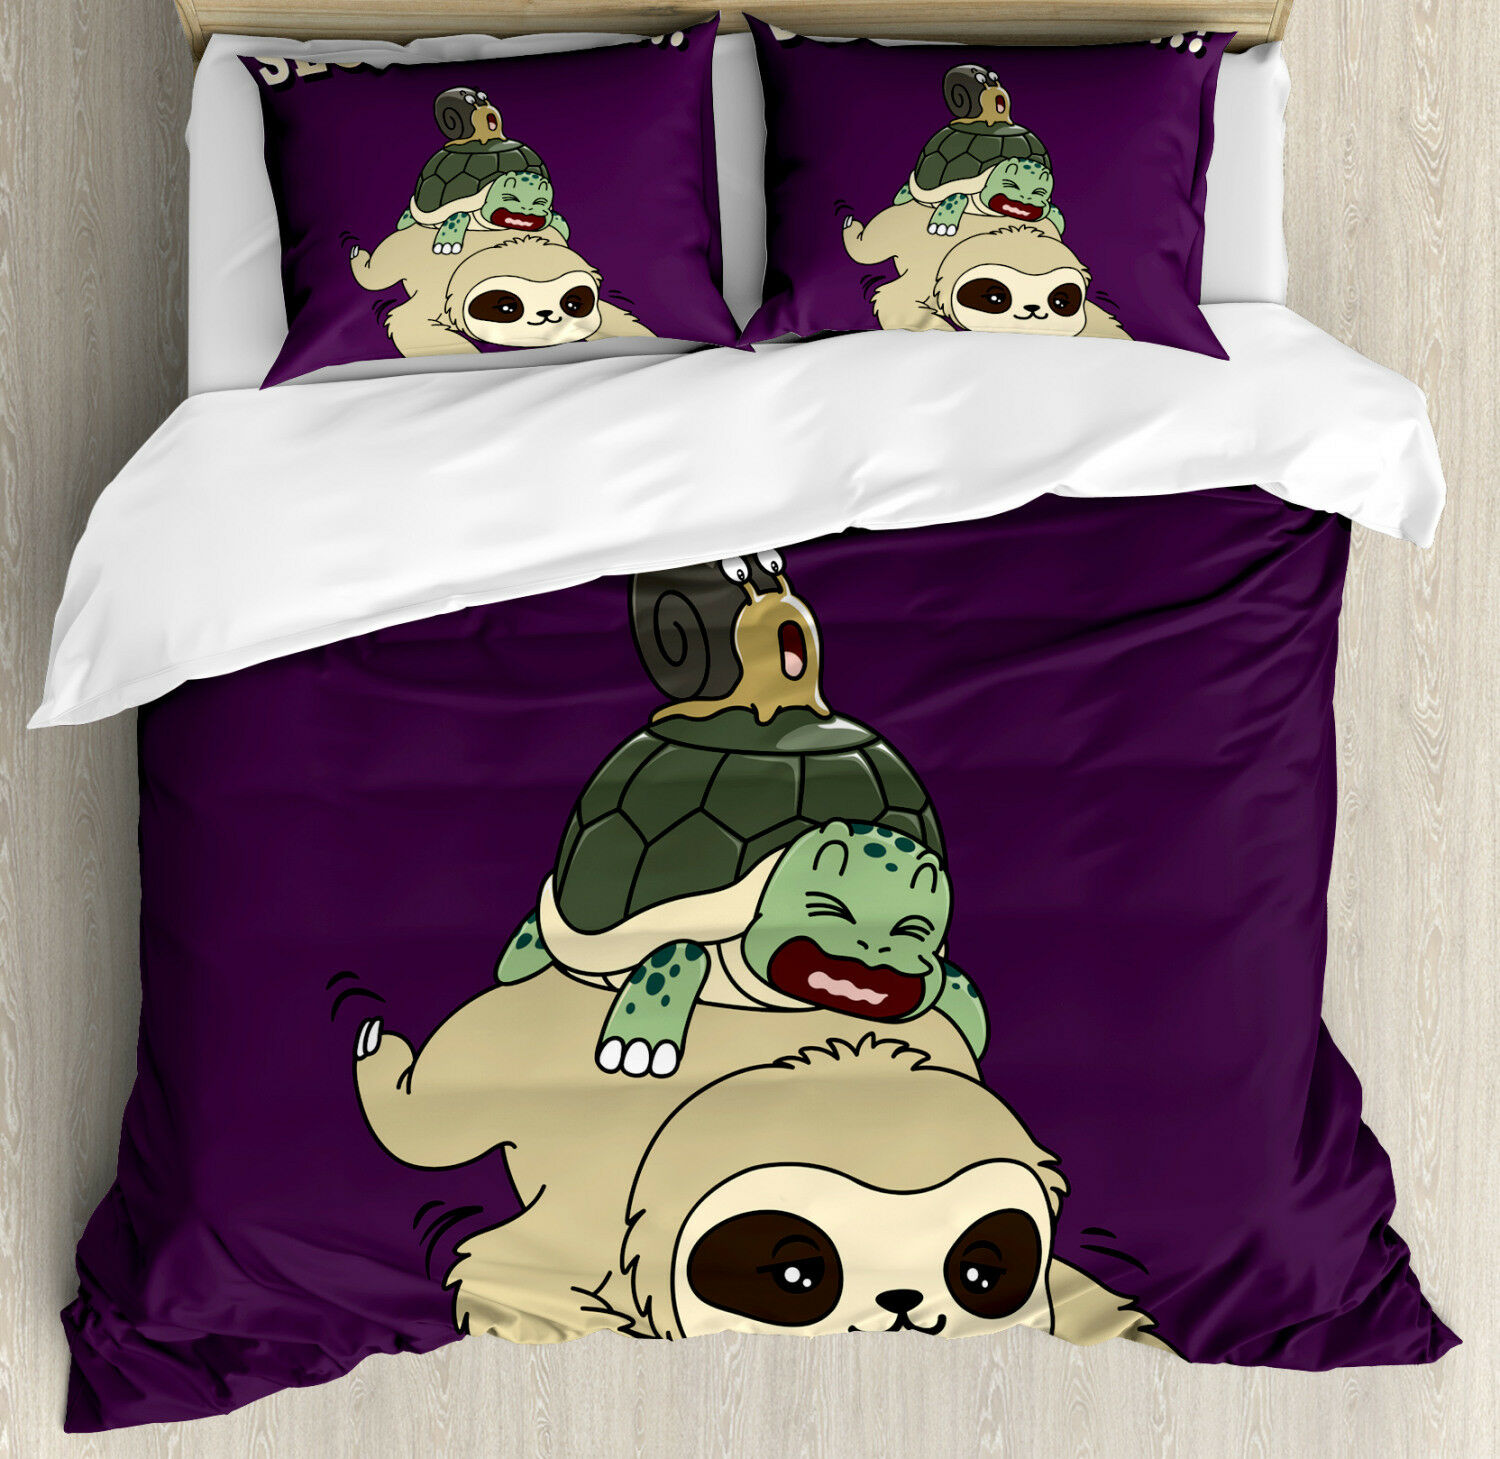 Sloth Duvet Cover Set with Pillow Shams Funny Cartoon Scenery Print